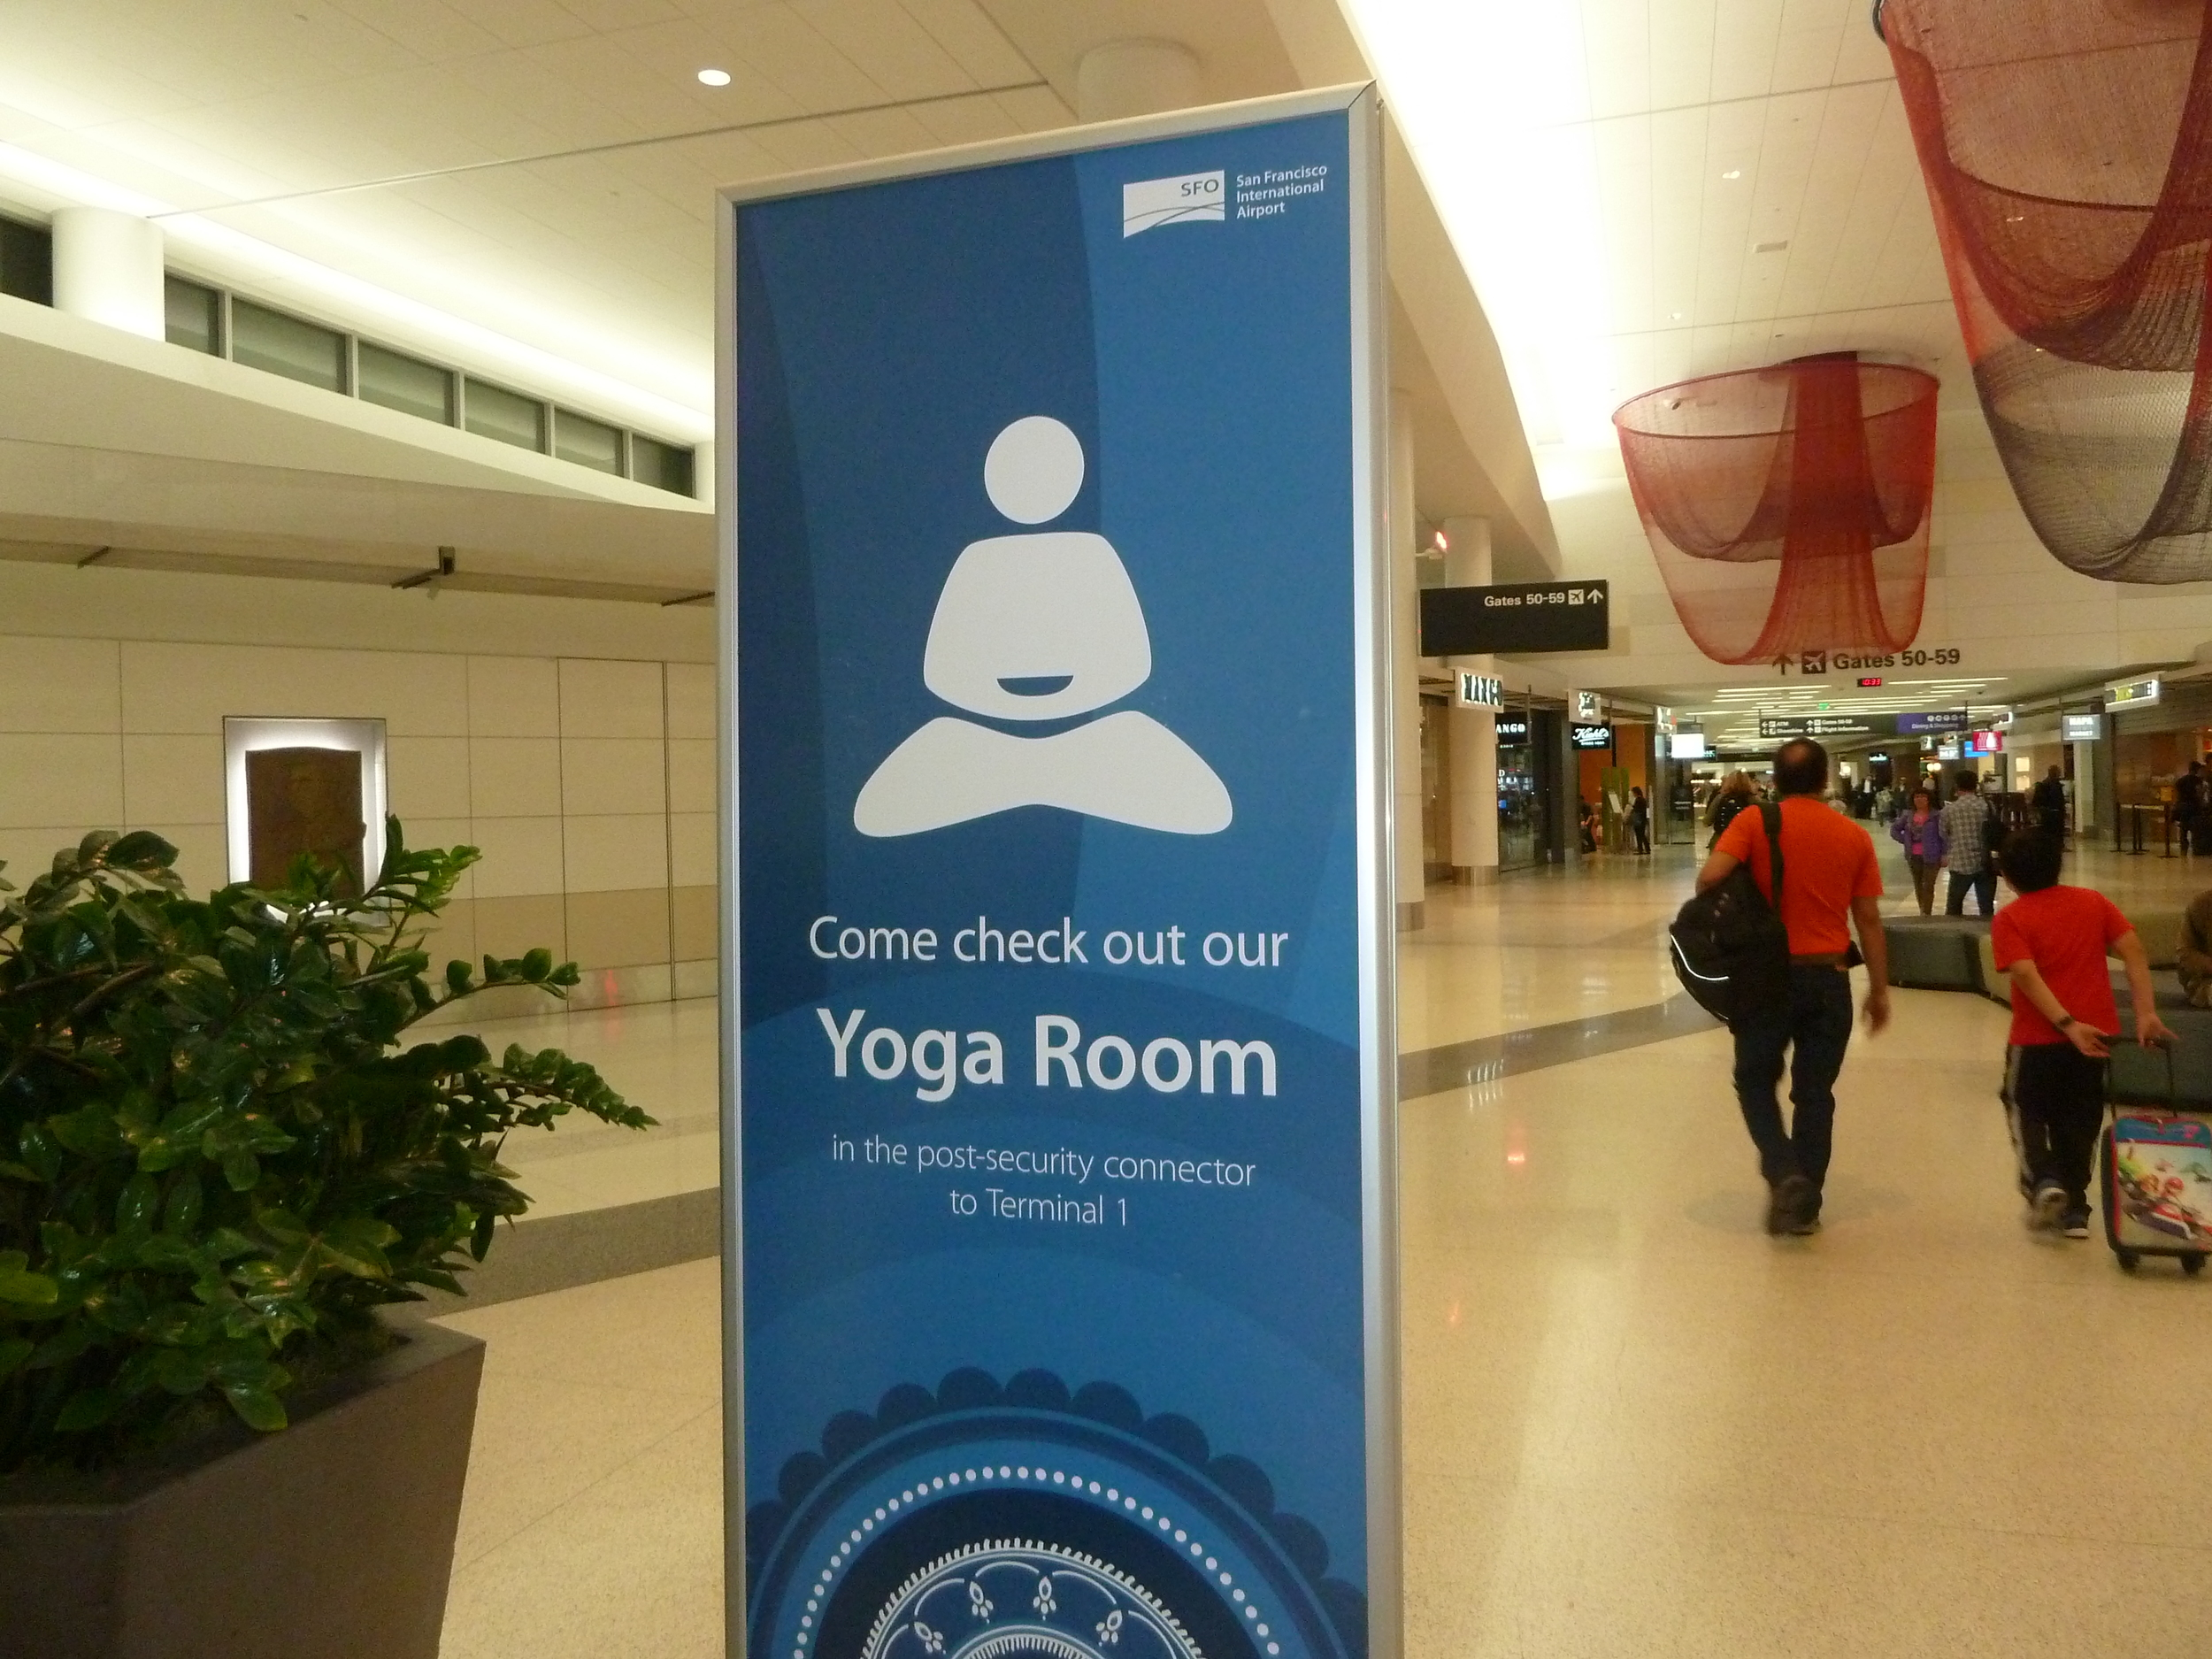 SFO offers quiet yoga rooms, complete with mats and blocks, to help work out your kinks before or after your flight.